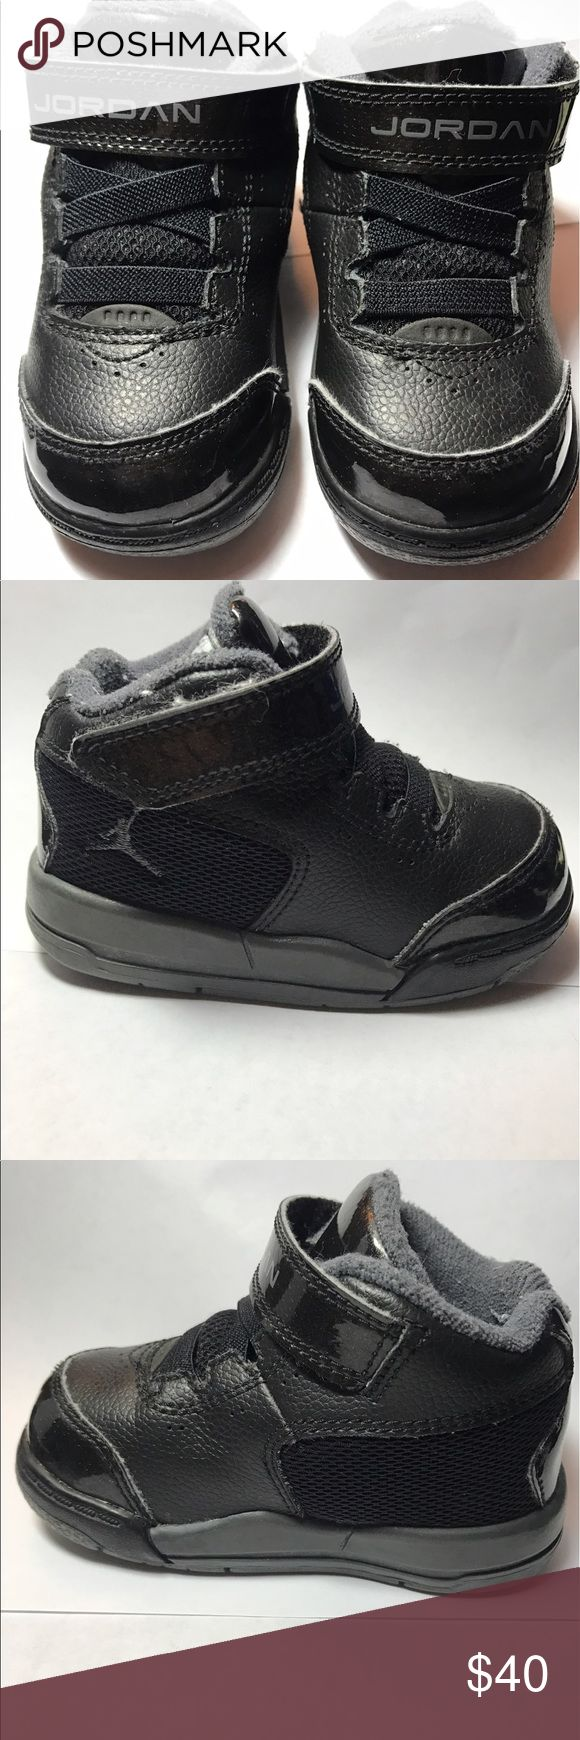 Baby Jordan Shoes Patent Black Leather Baby Jordan shoes Air Jordan Shoes Athletic Shoes